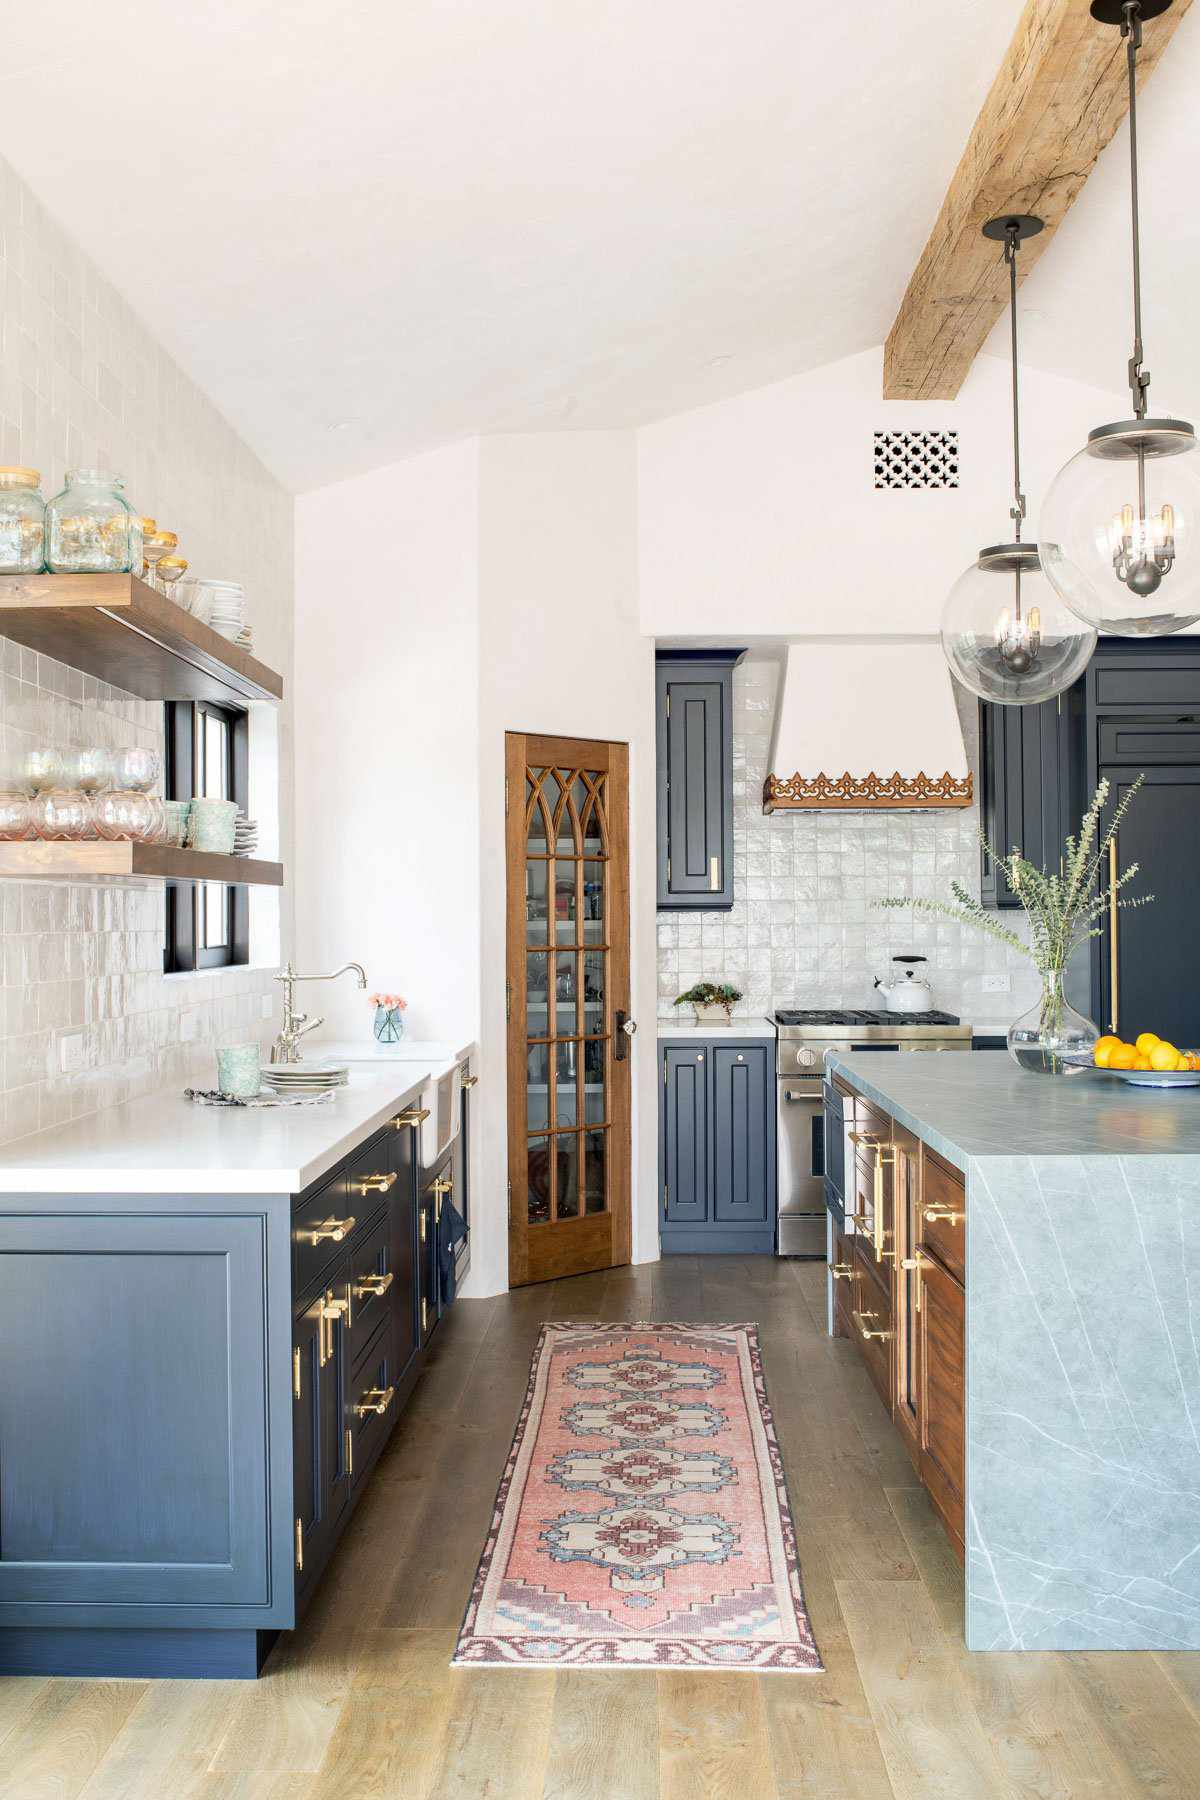 A vibrant kitchen with navy cabinets and a pink printed rug